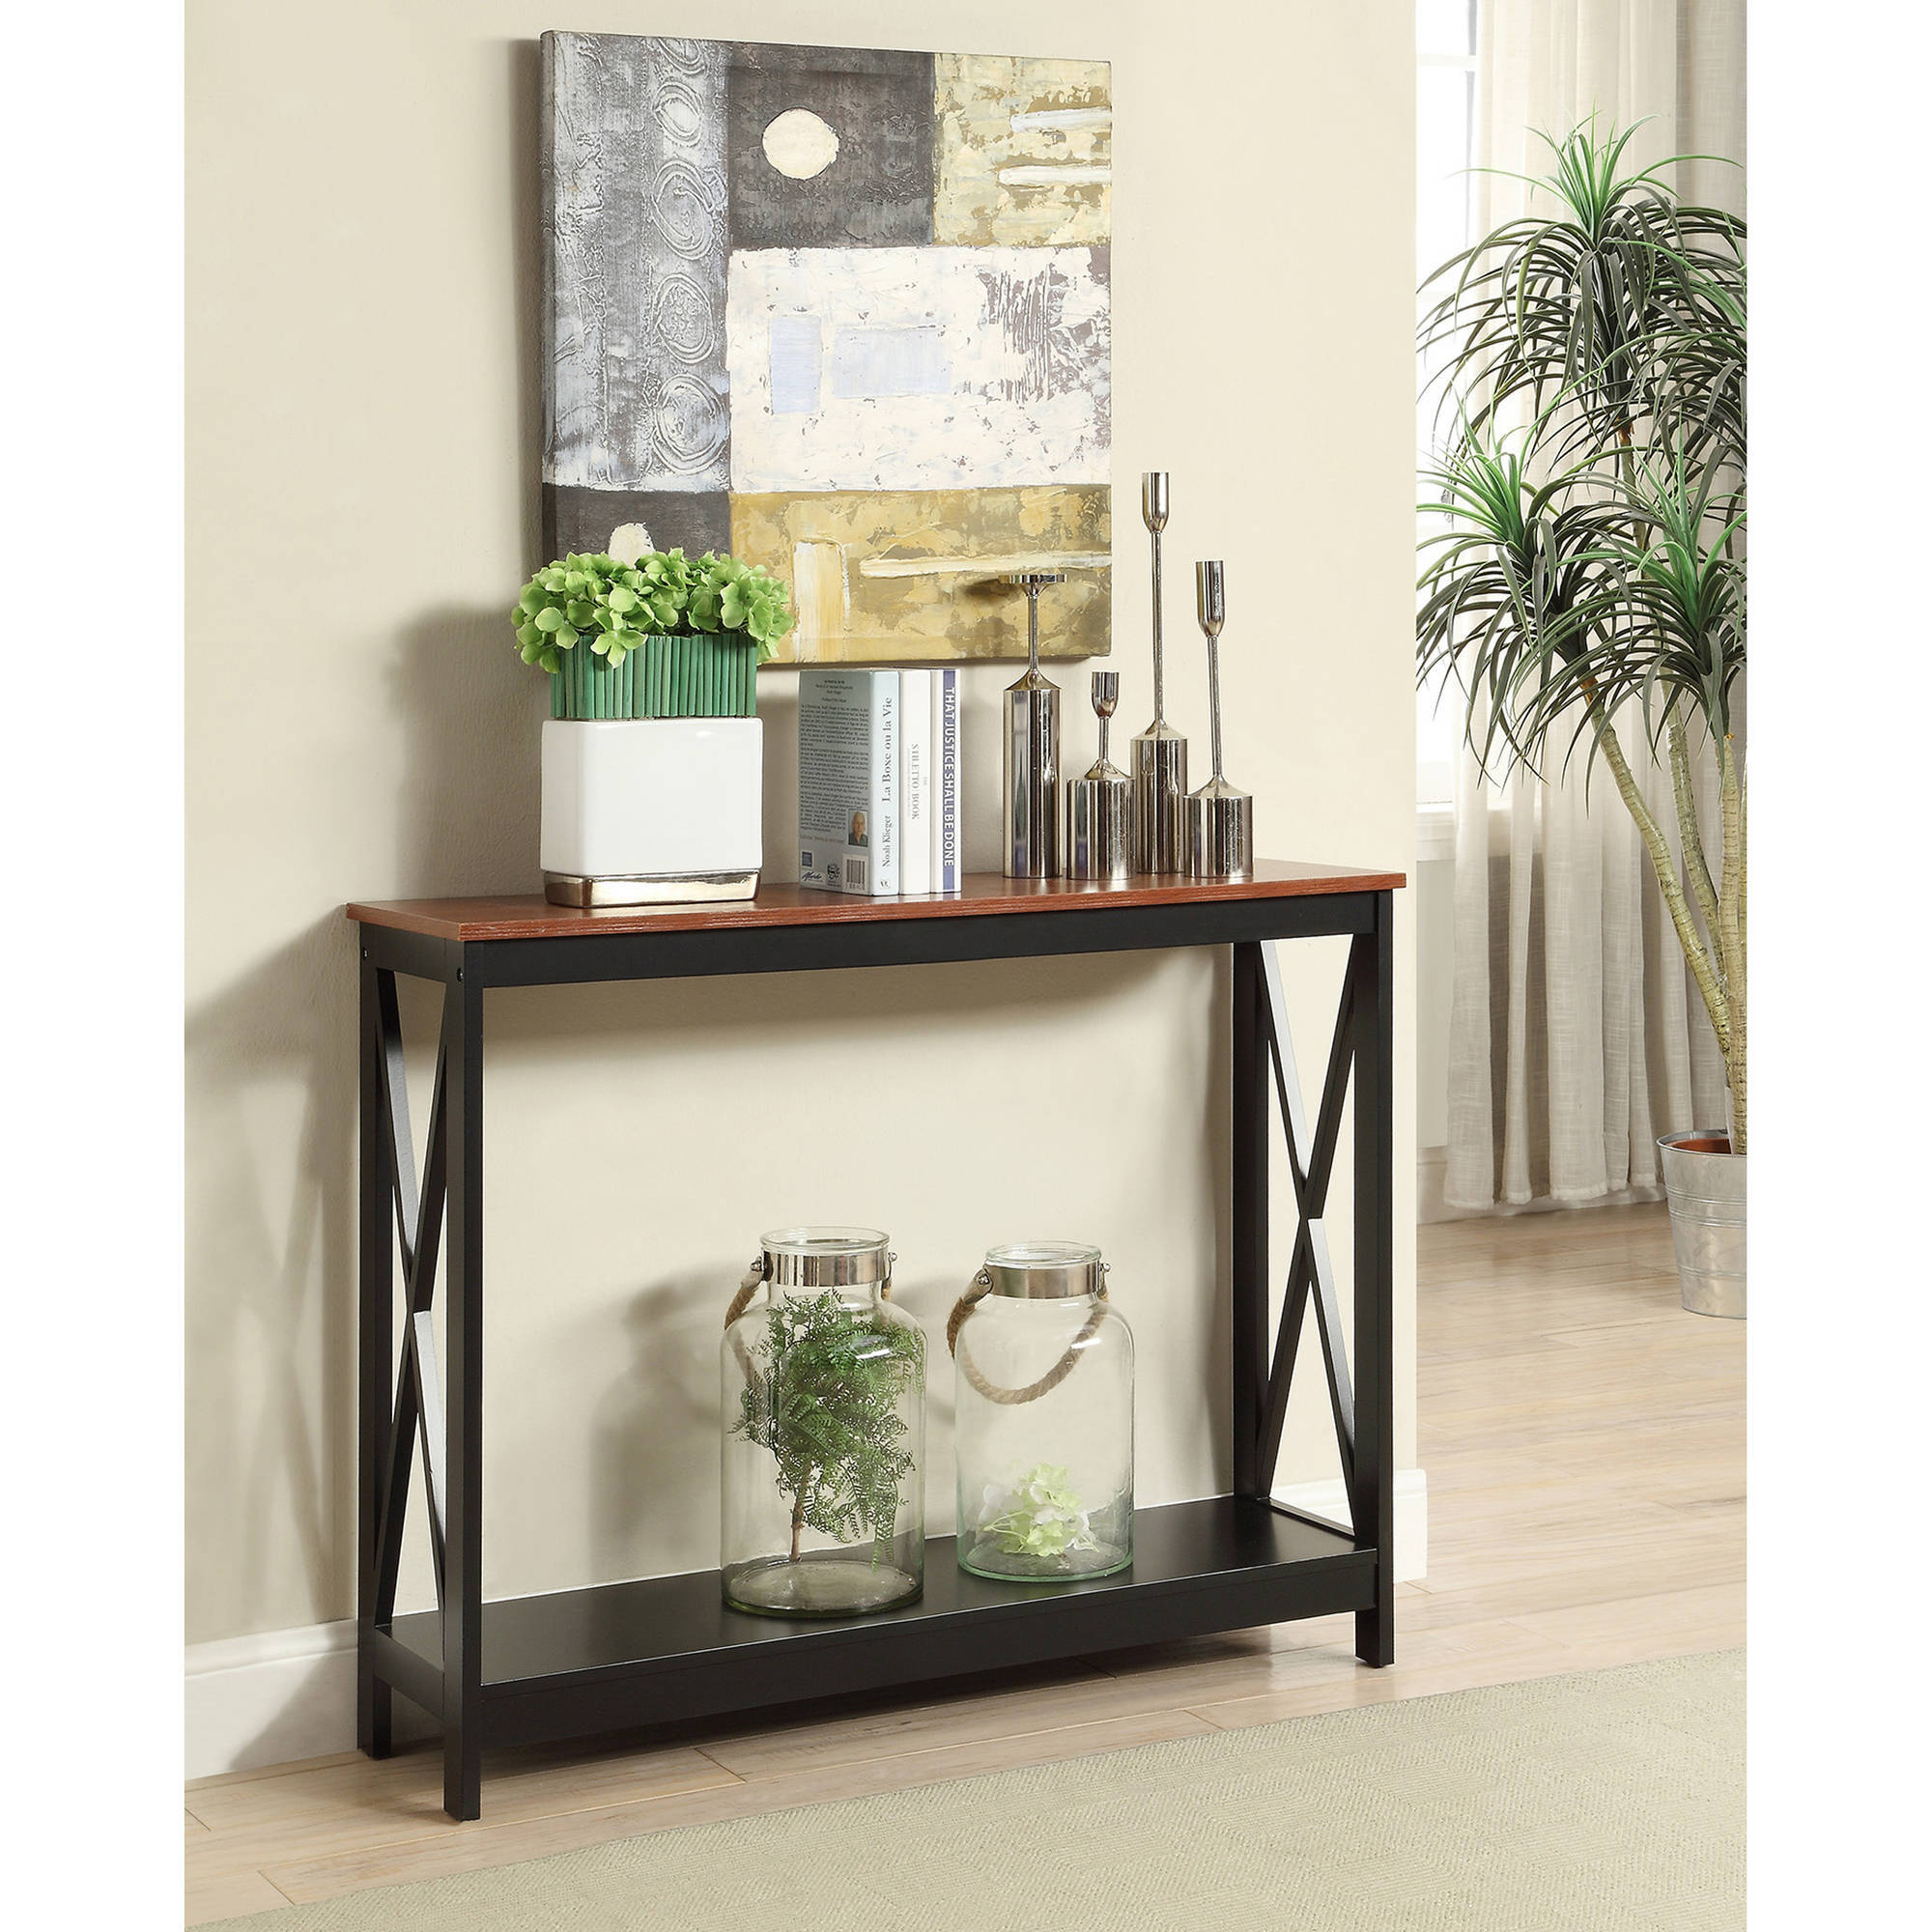 Hallway Console Table Cherry Black Wood